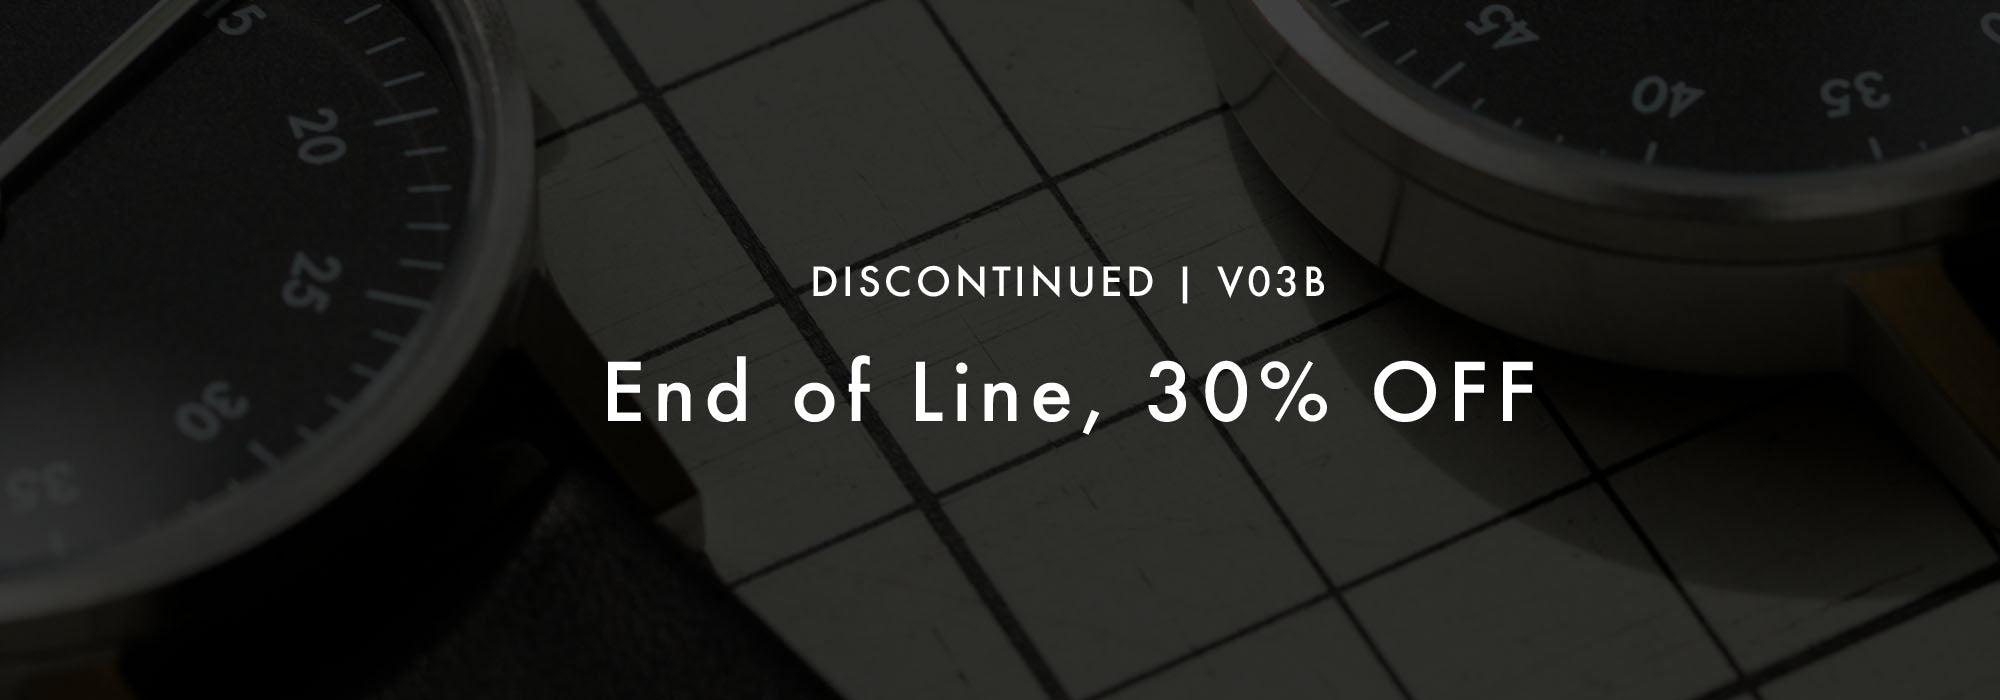 The Discontinued V03B - 30% OFF